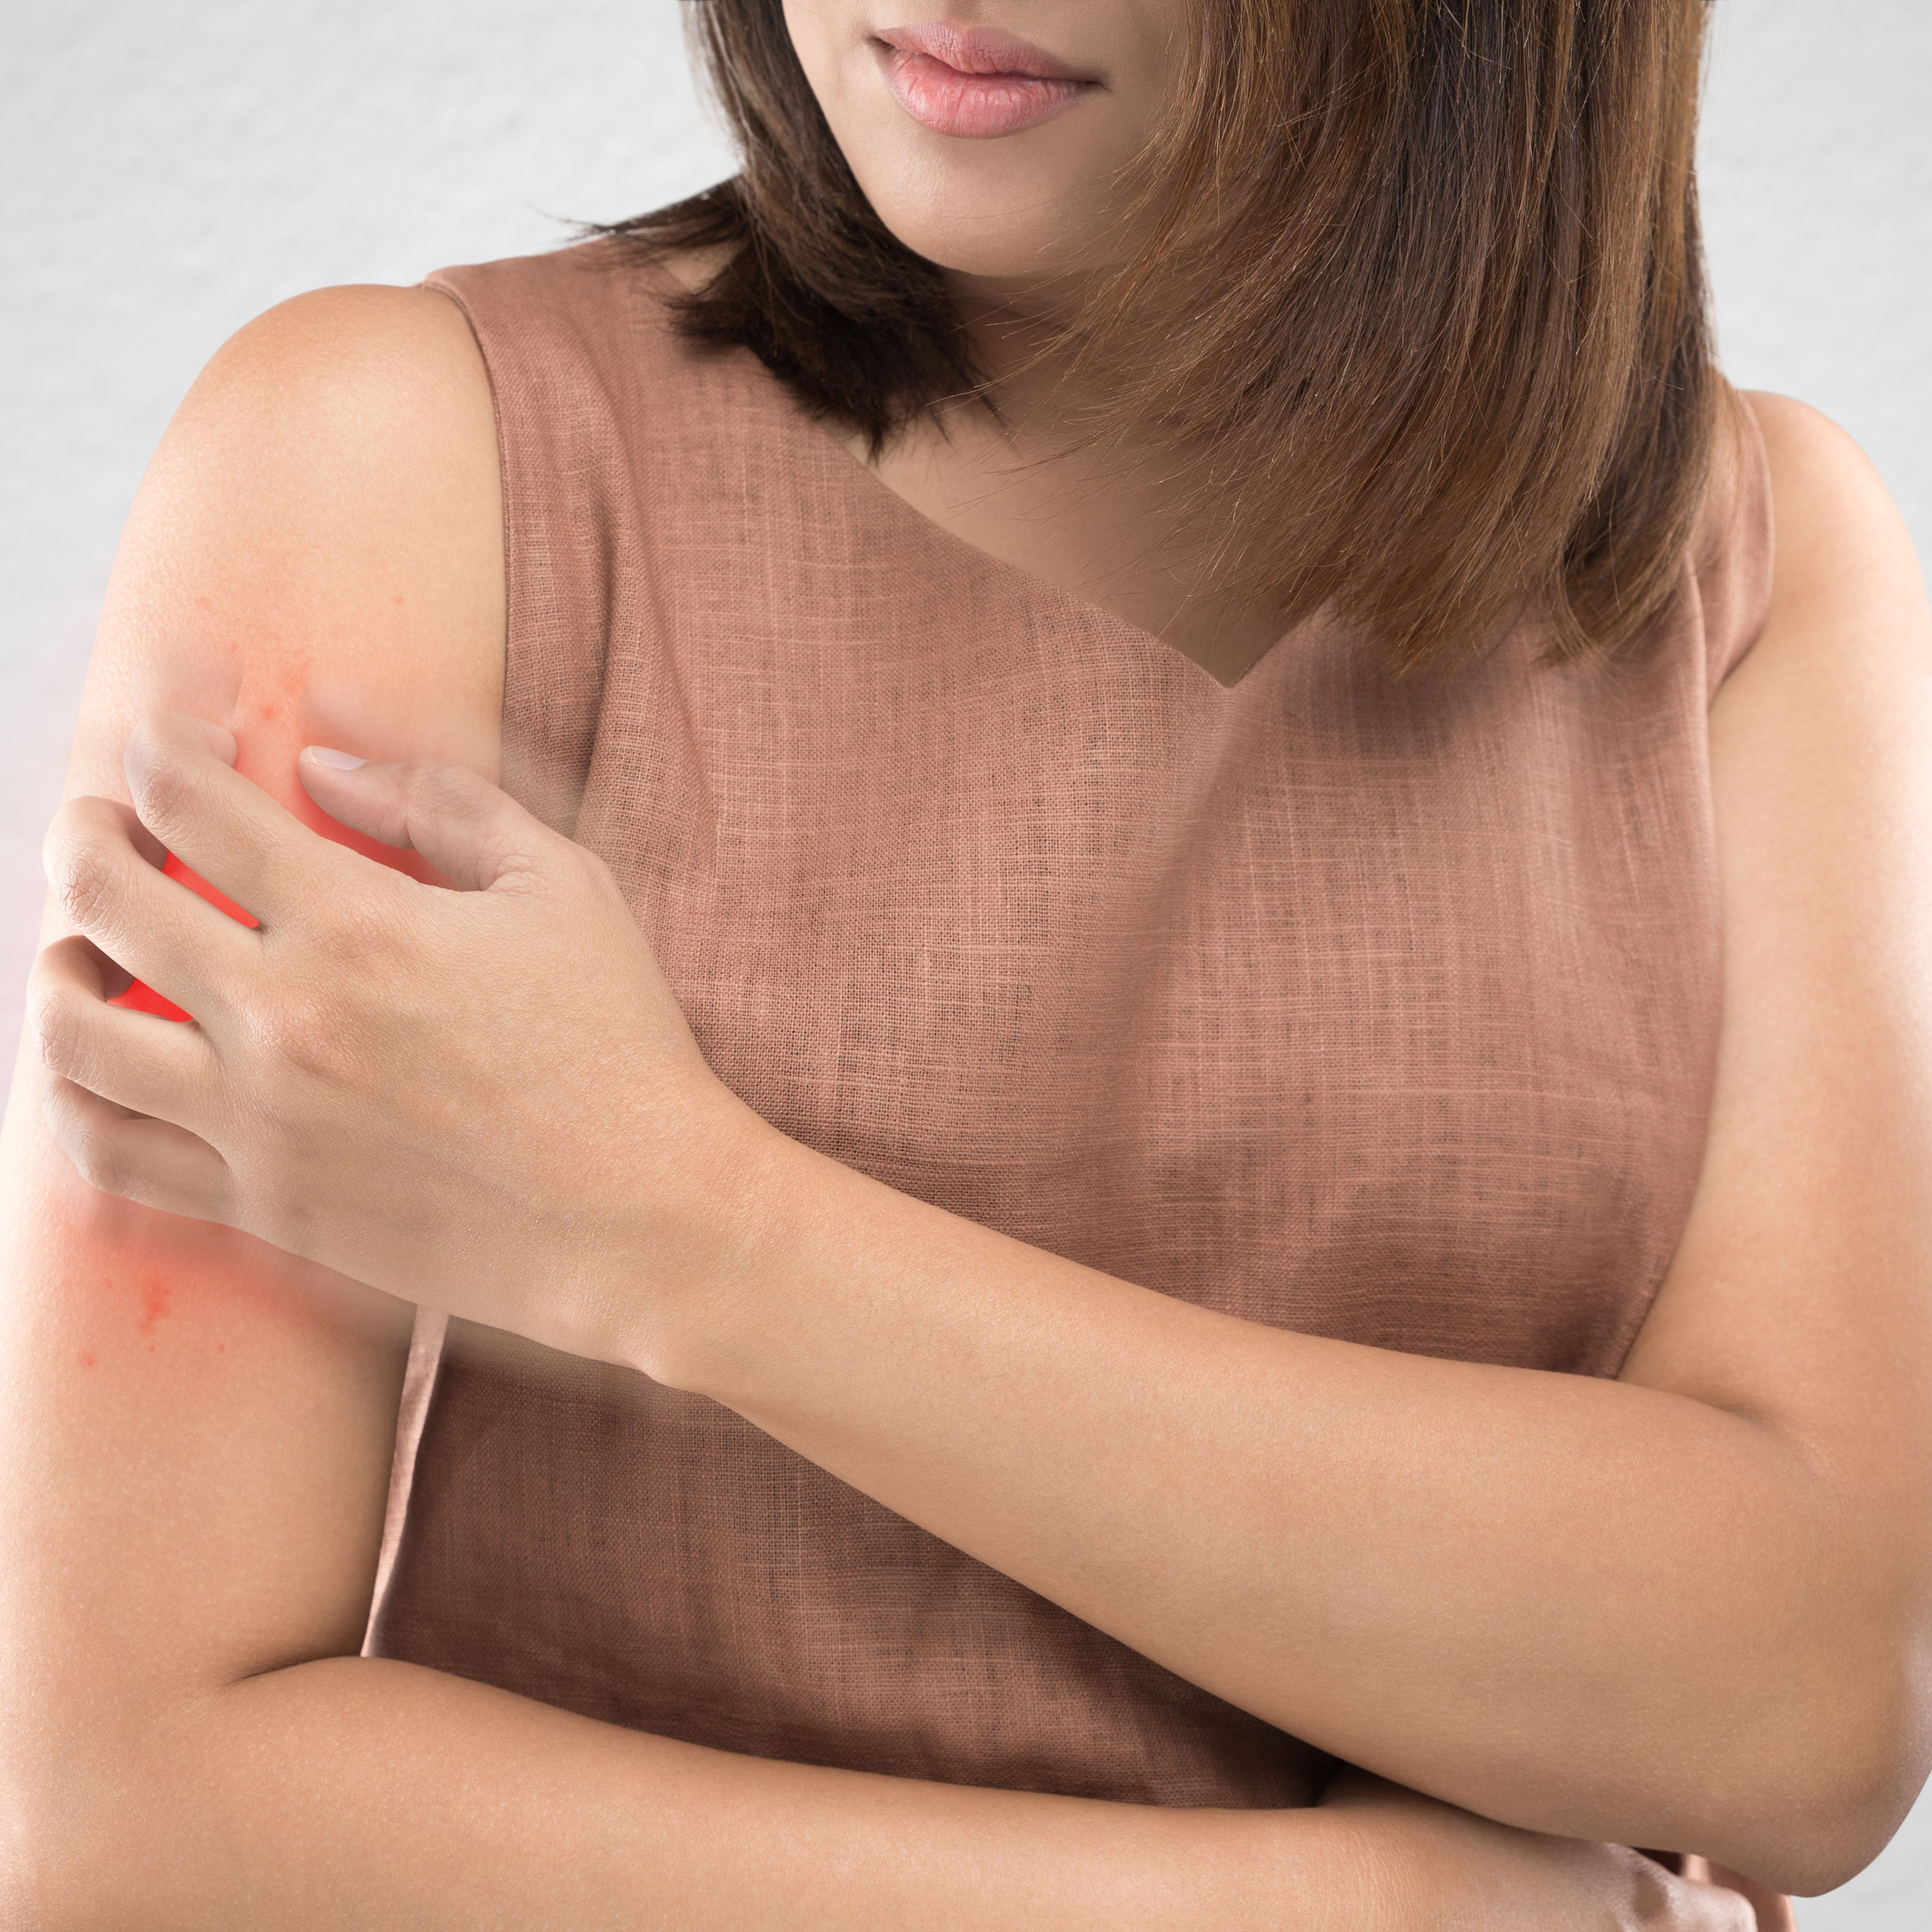 9 Drugs That Can Trigger or Worsen Psoriasis